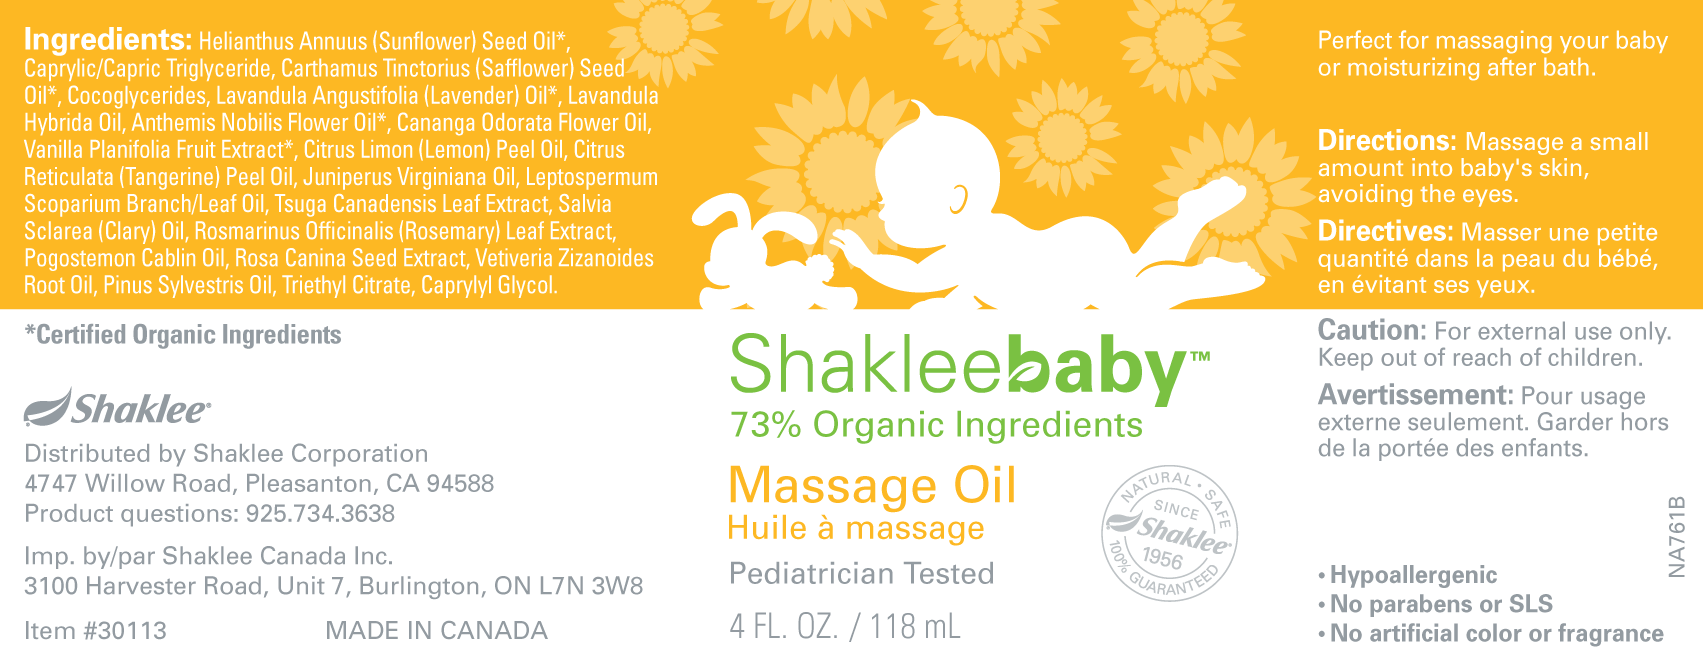 Shakleebaby Massage Oil